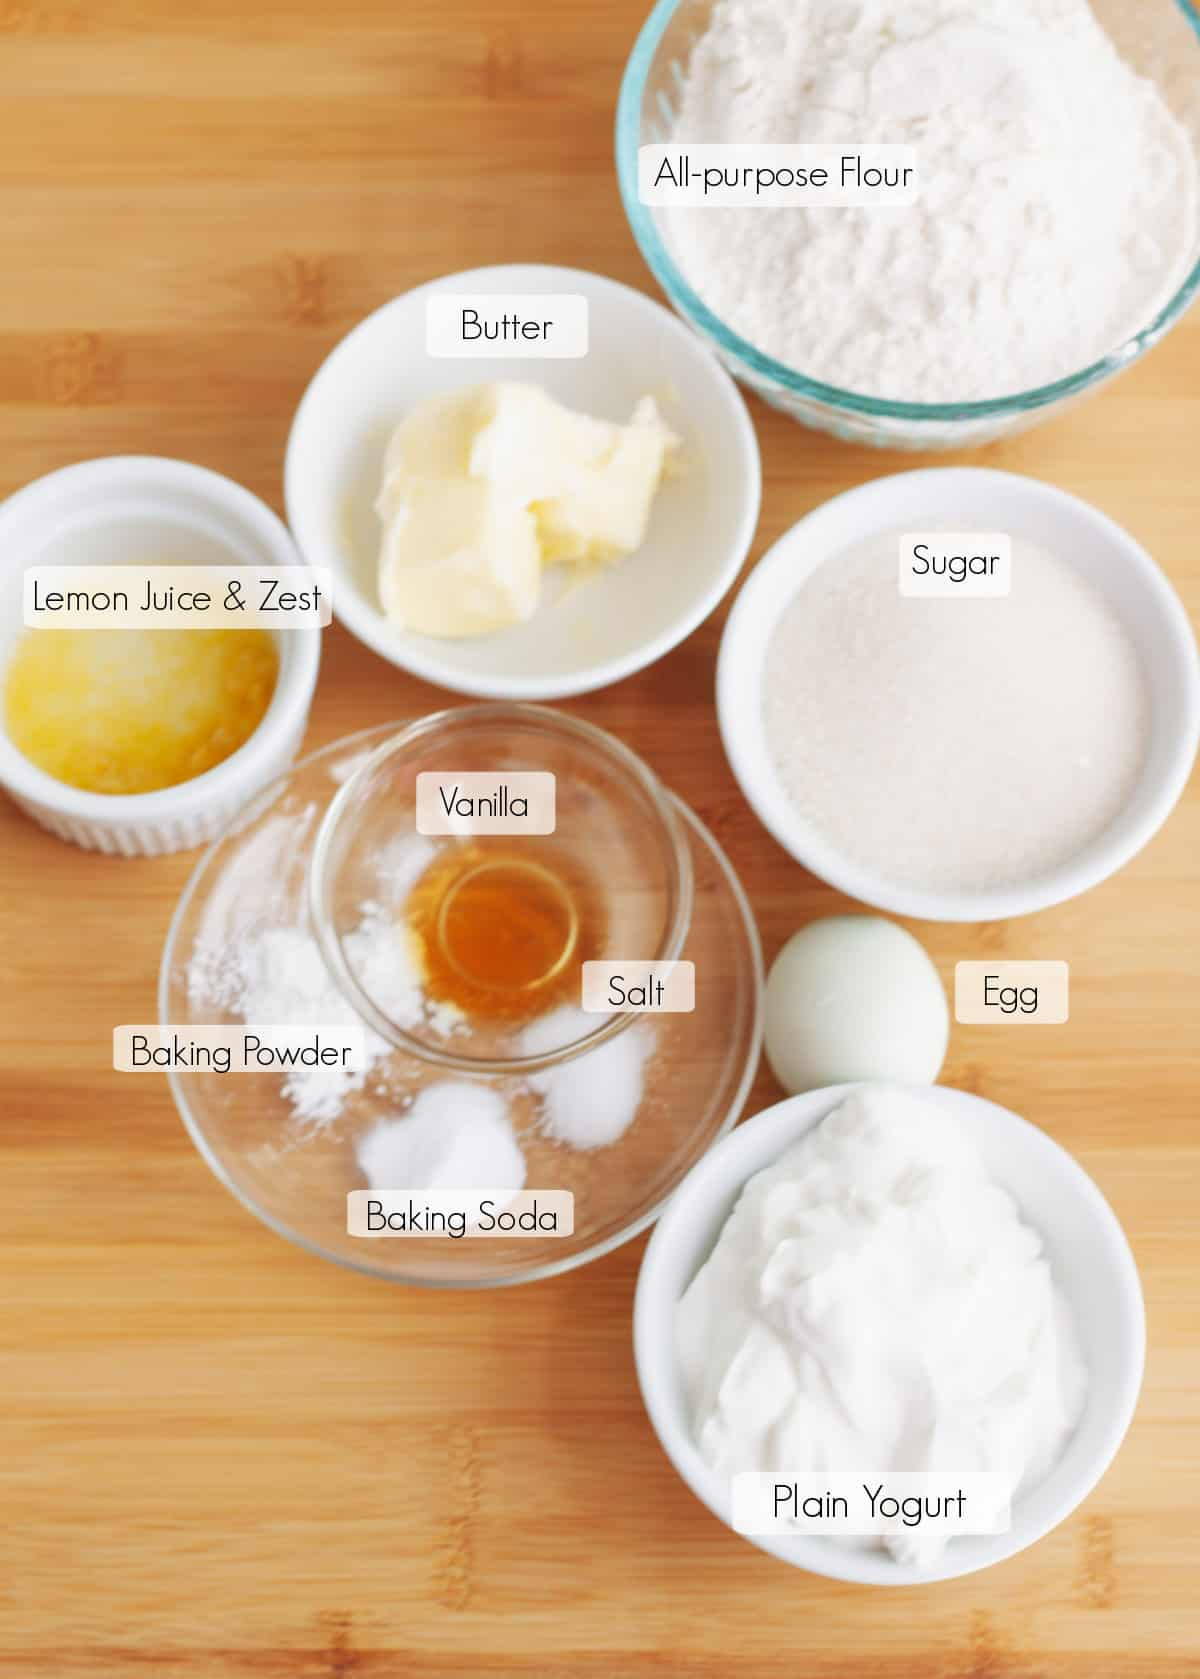 Labeled ingredients in bowls to make lemon bread recipe.